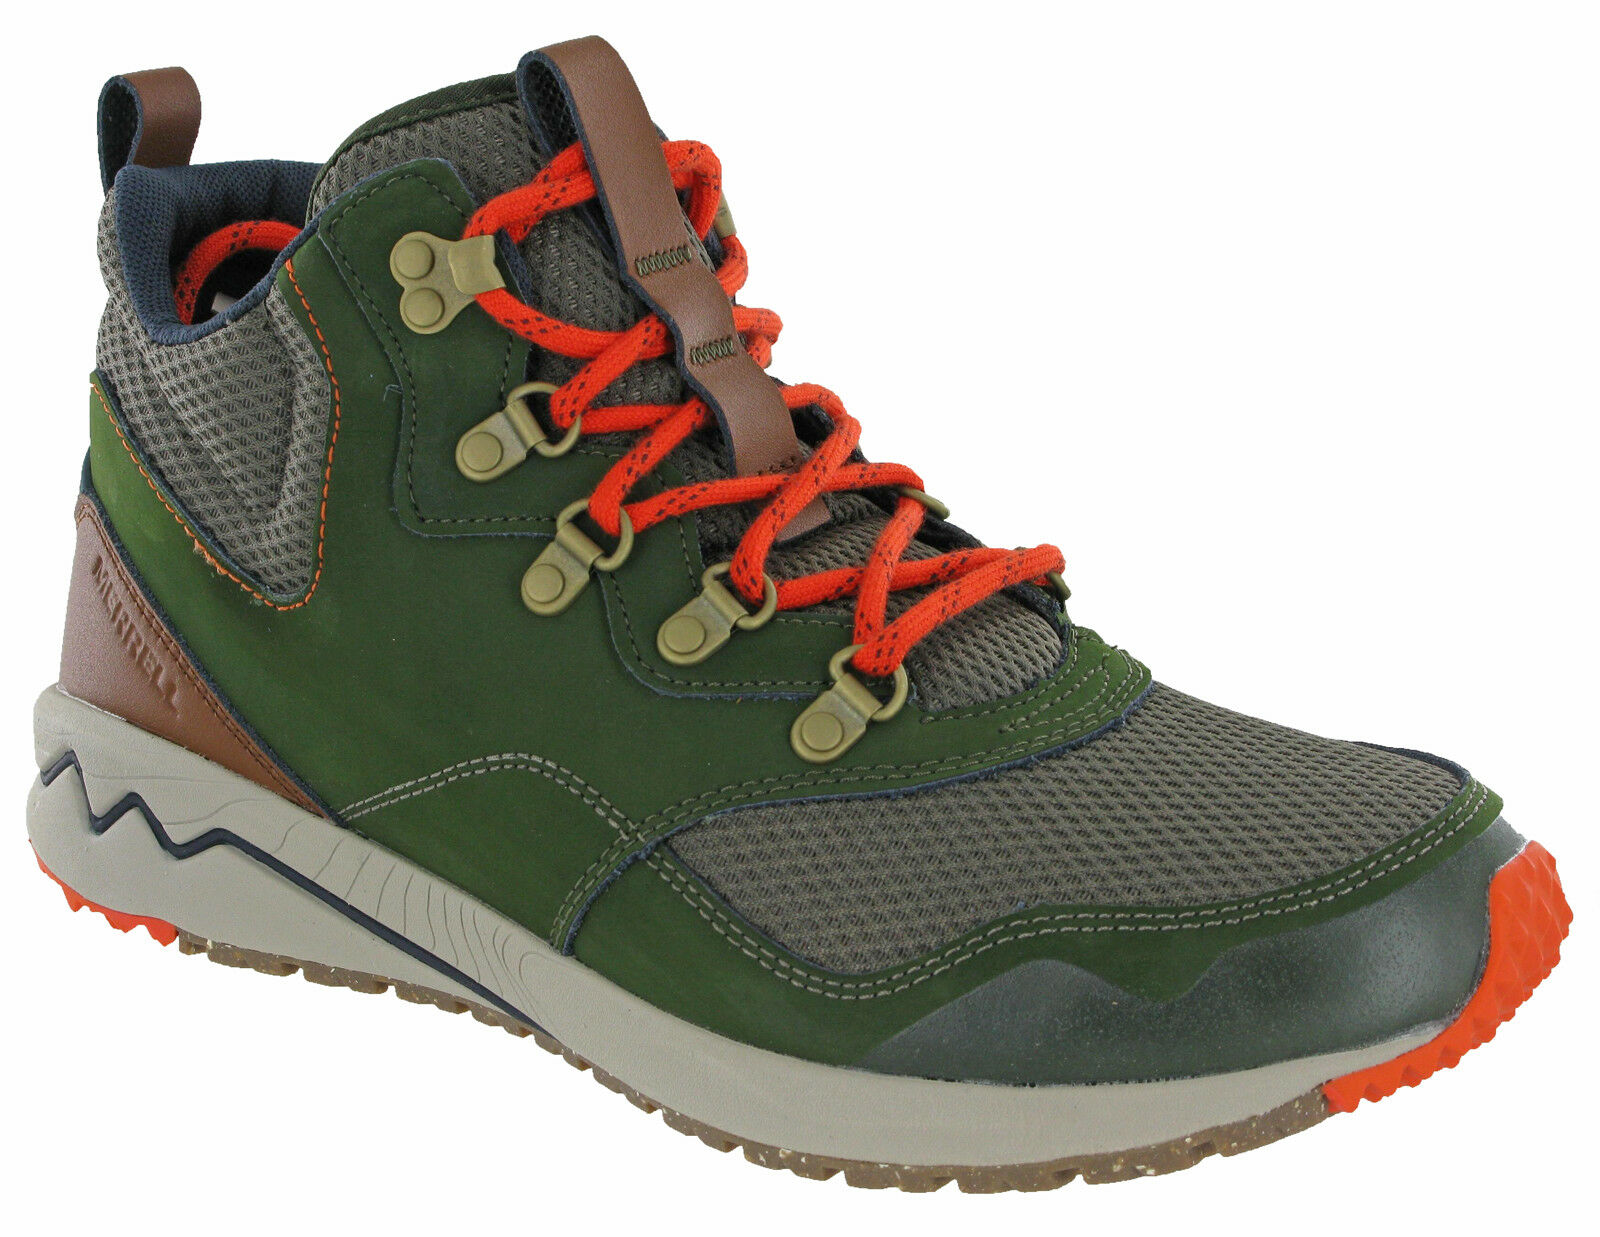 Merrell Stowe Mid Hiking Boots Ankle Mountaineering Walking Mens Leather Rosin